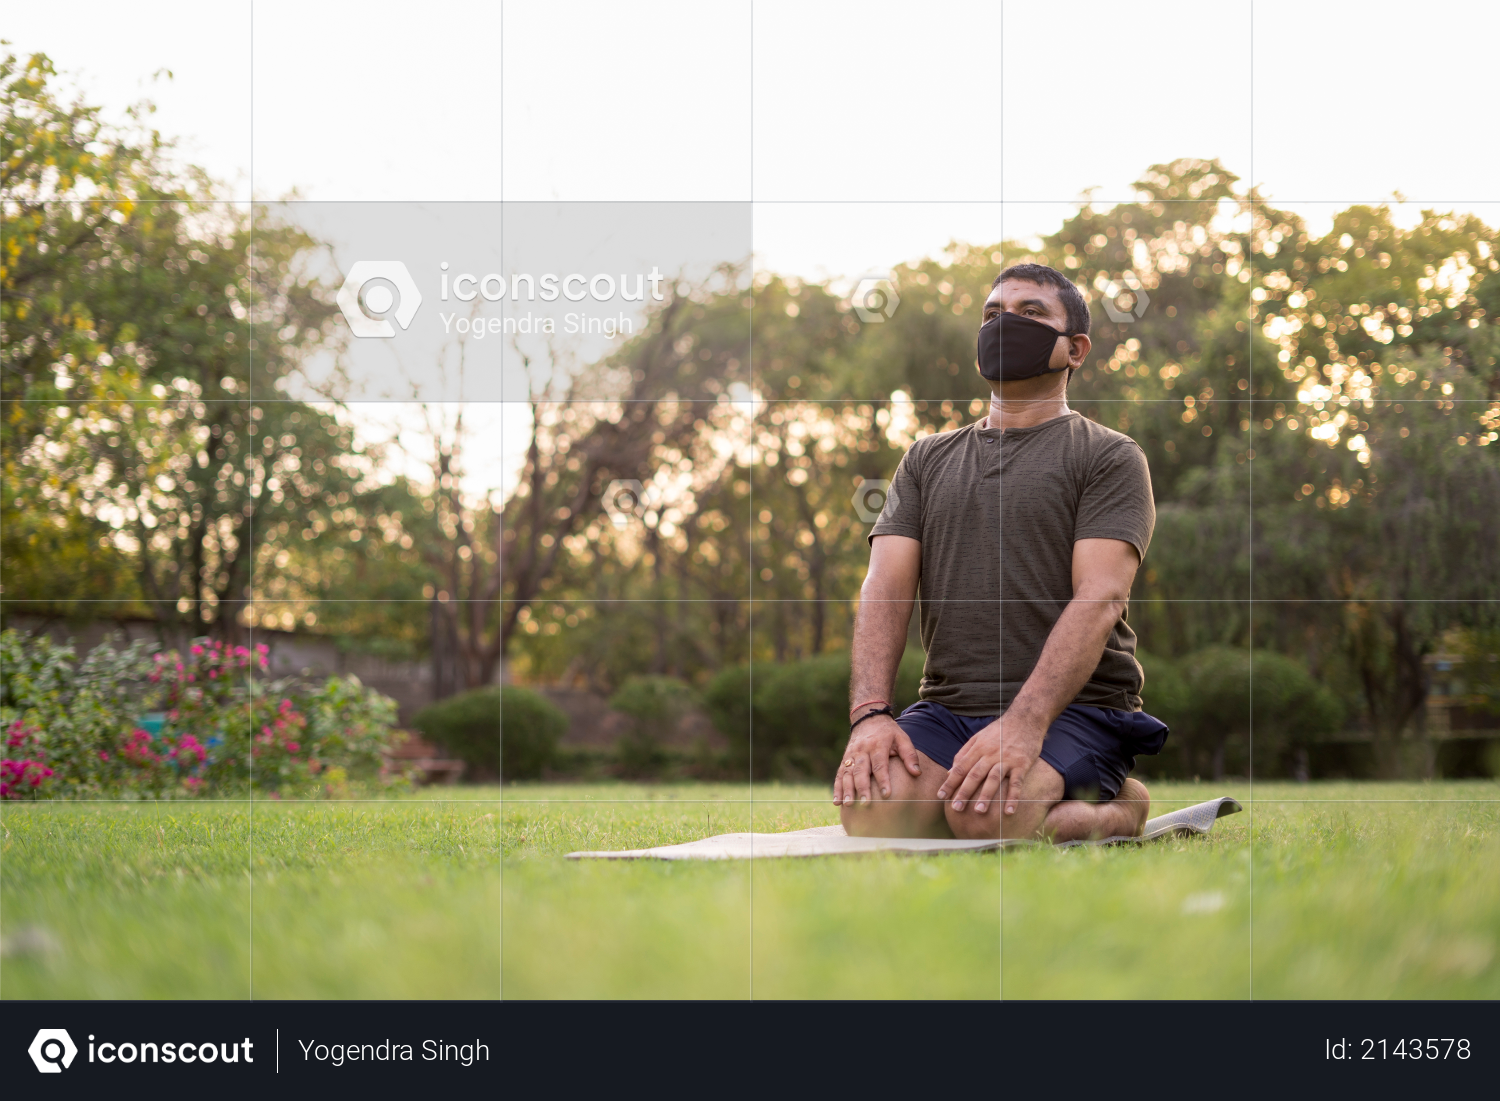 Mid-aged Man doing yoga in a park covered with trees on International Yoga Day Photo